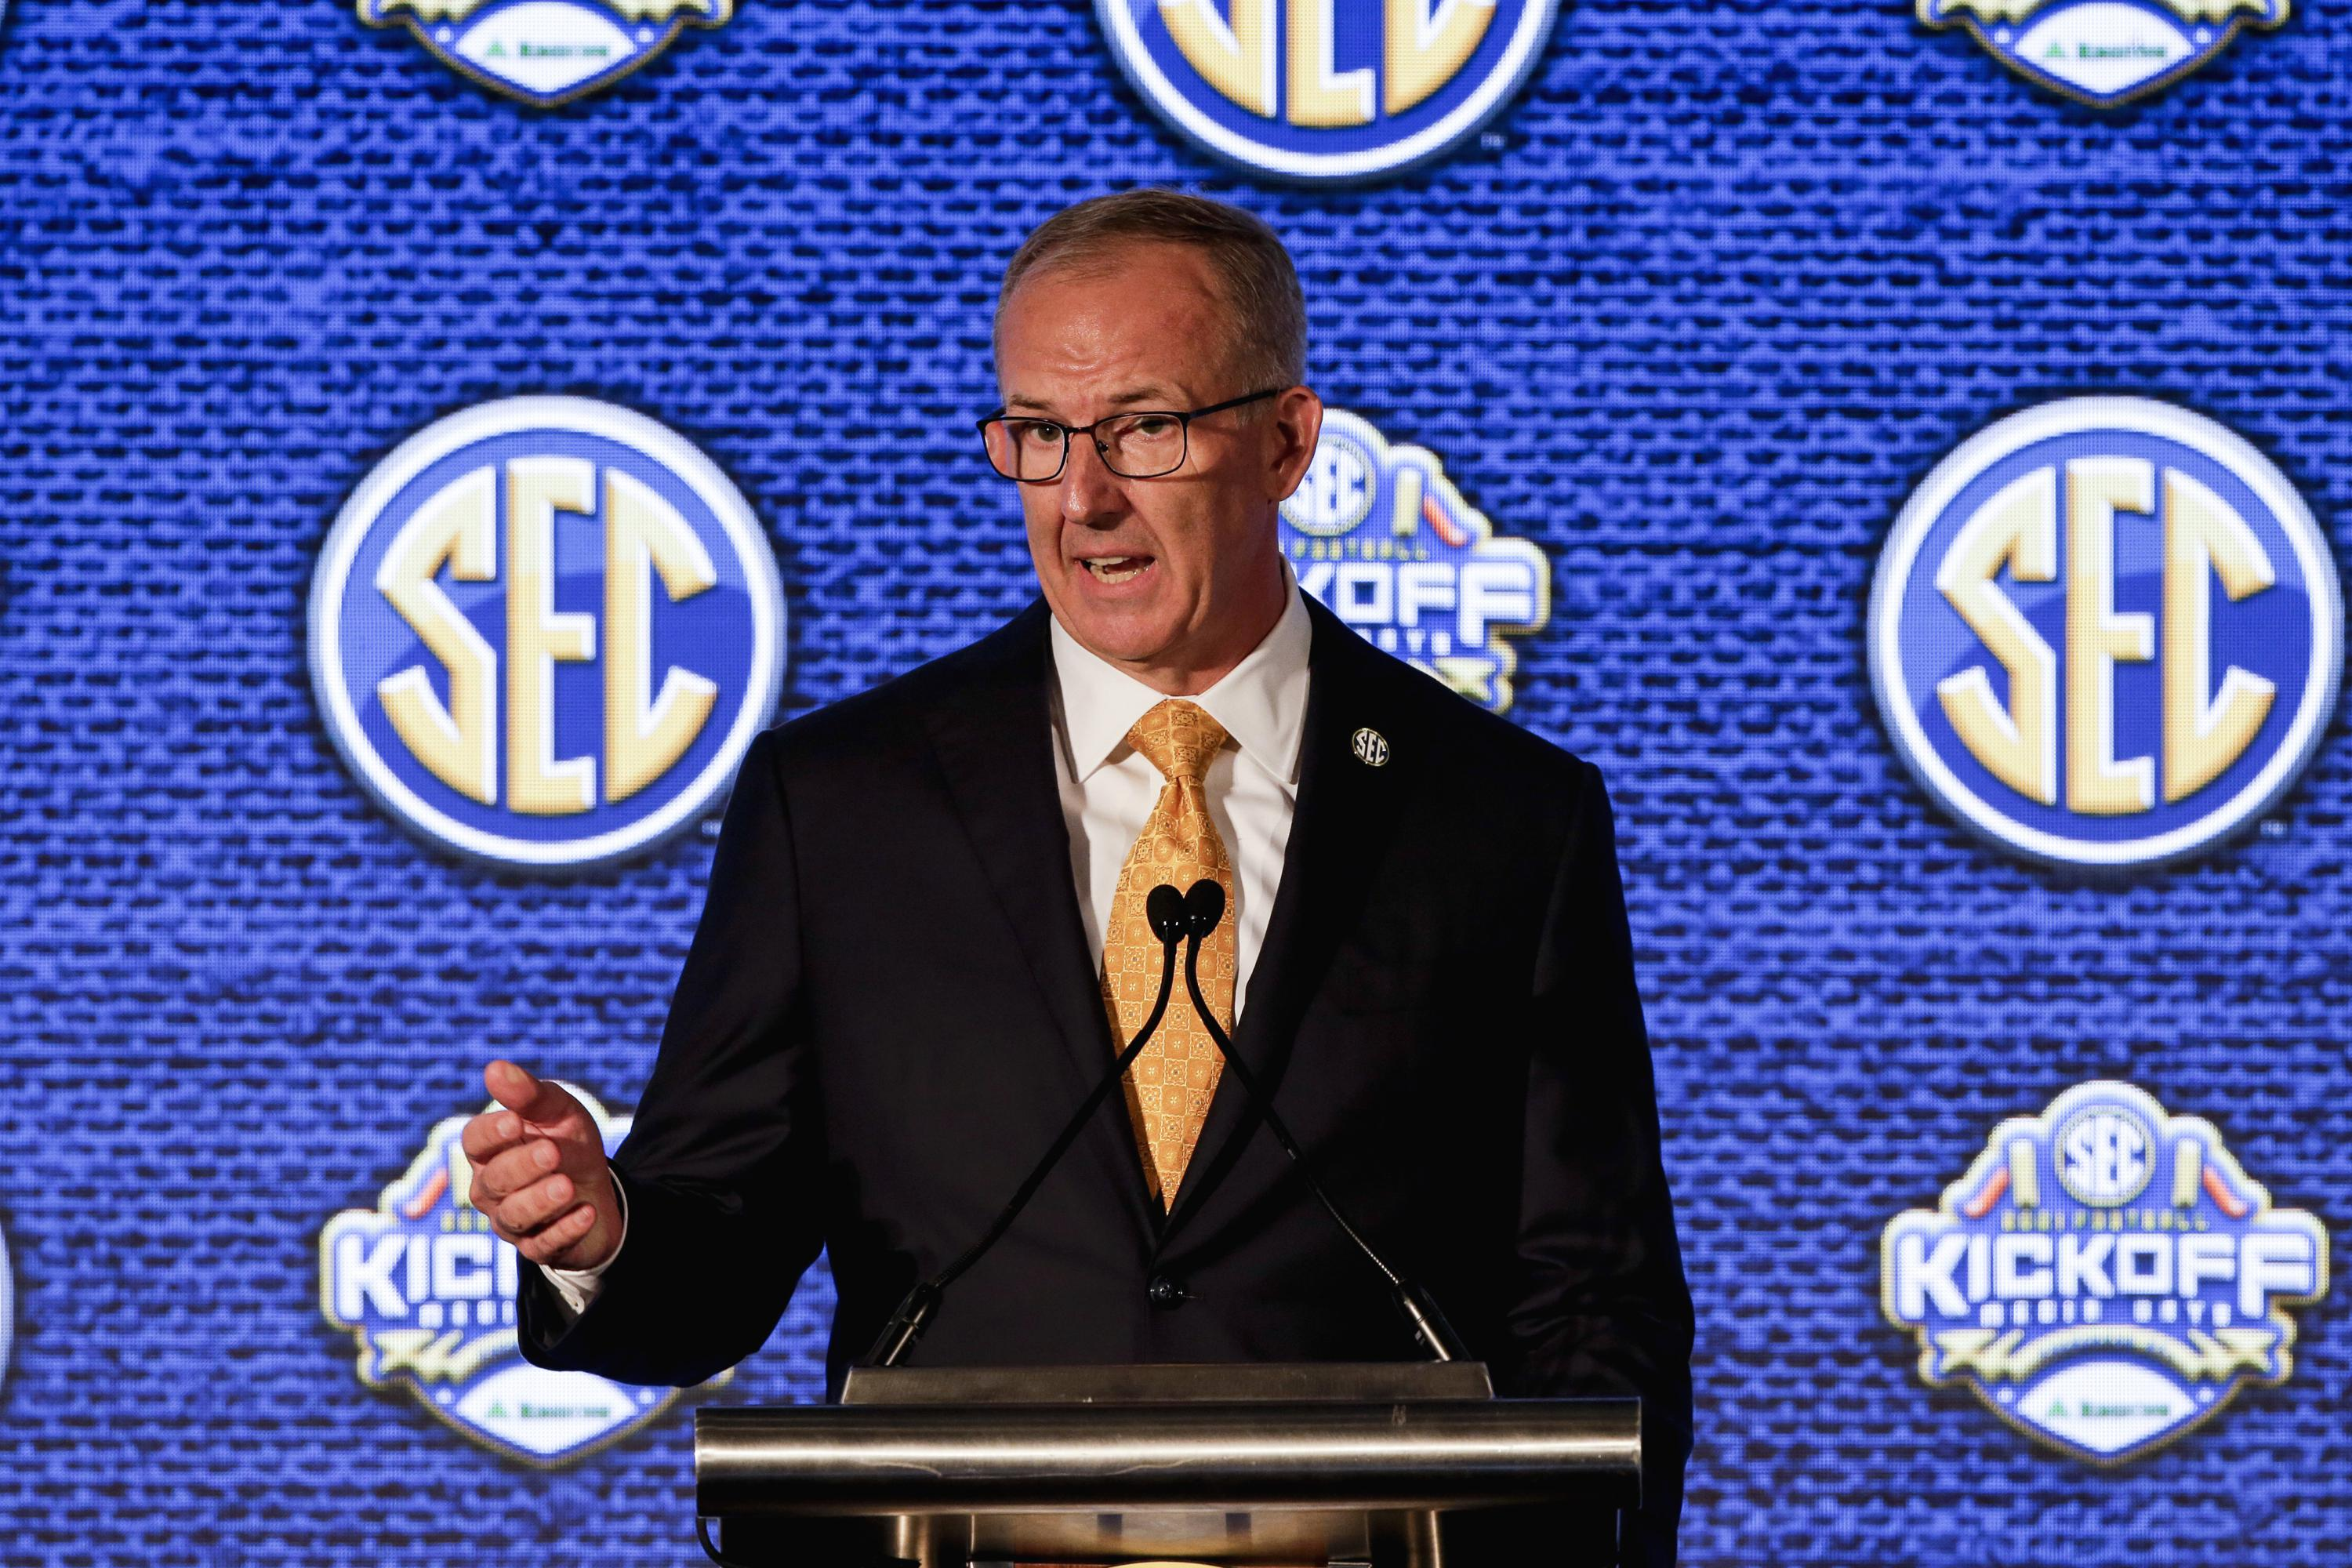 SEC takeover: Expansion would just mean more power, wealth